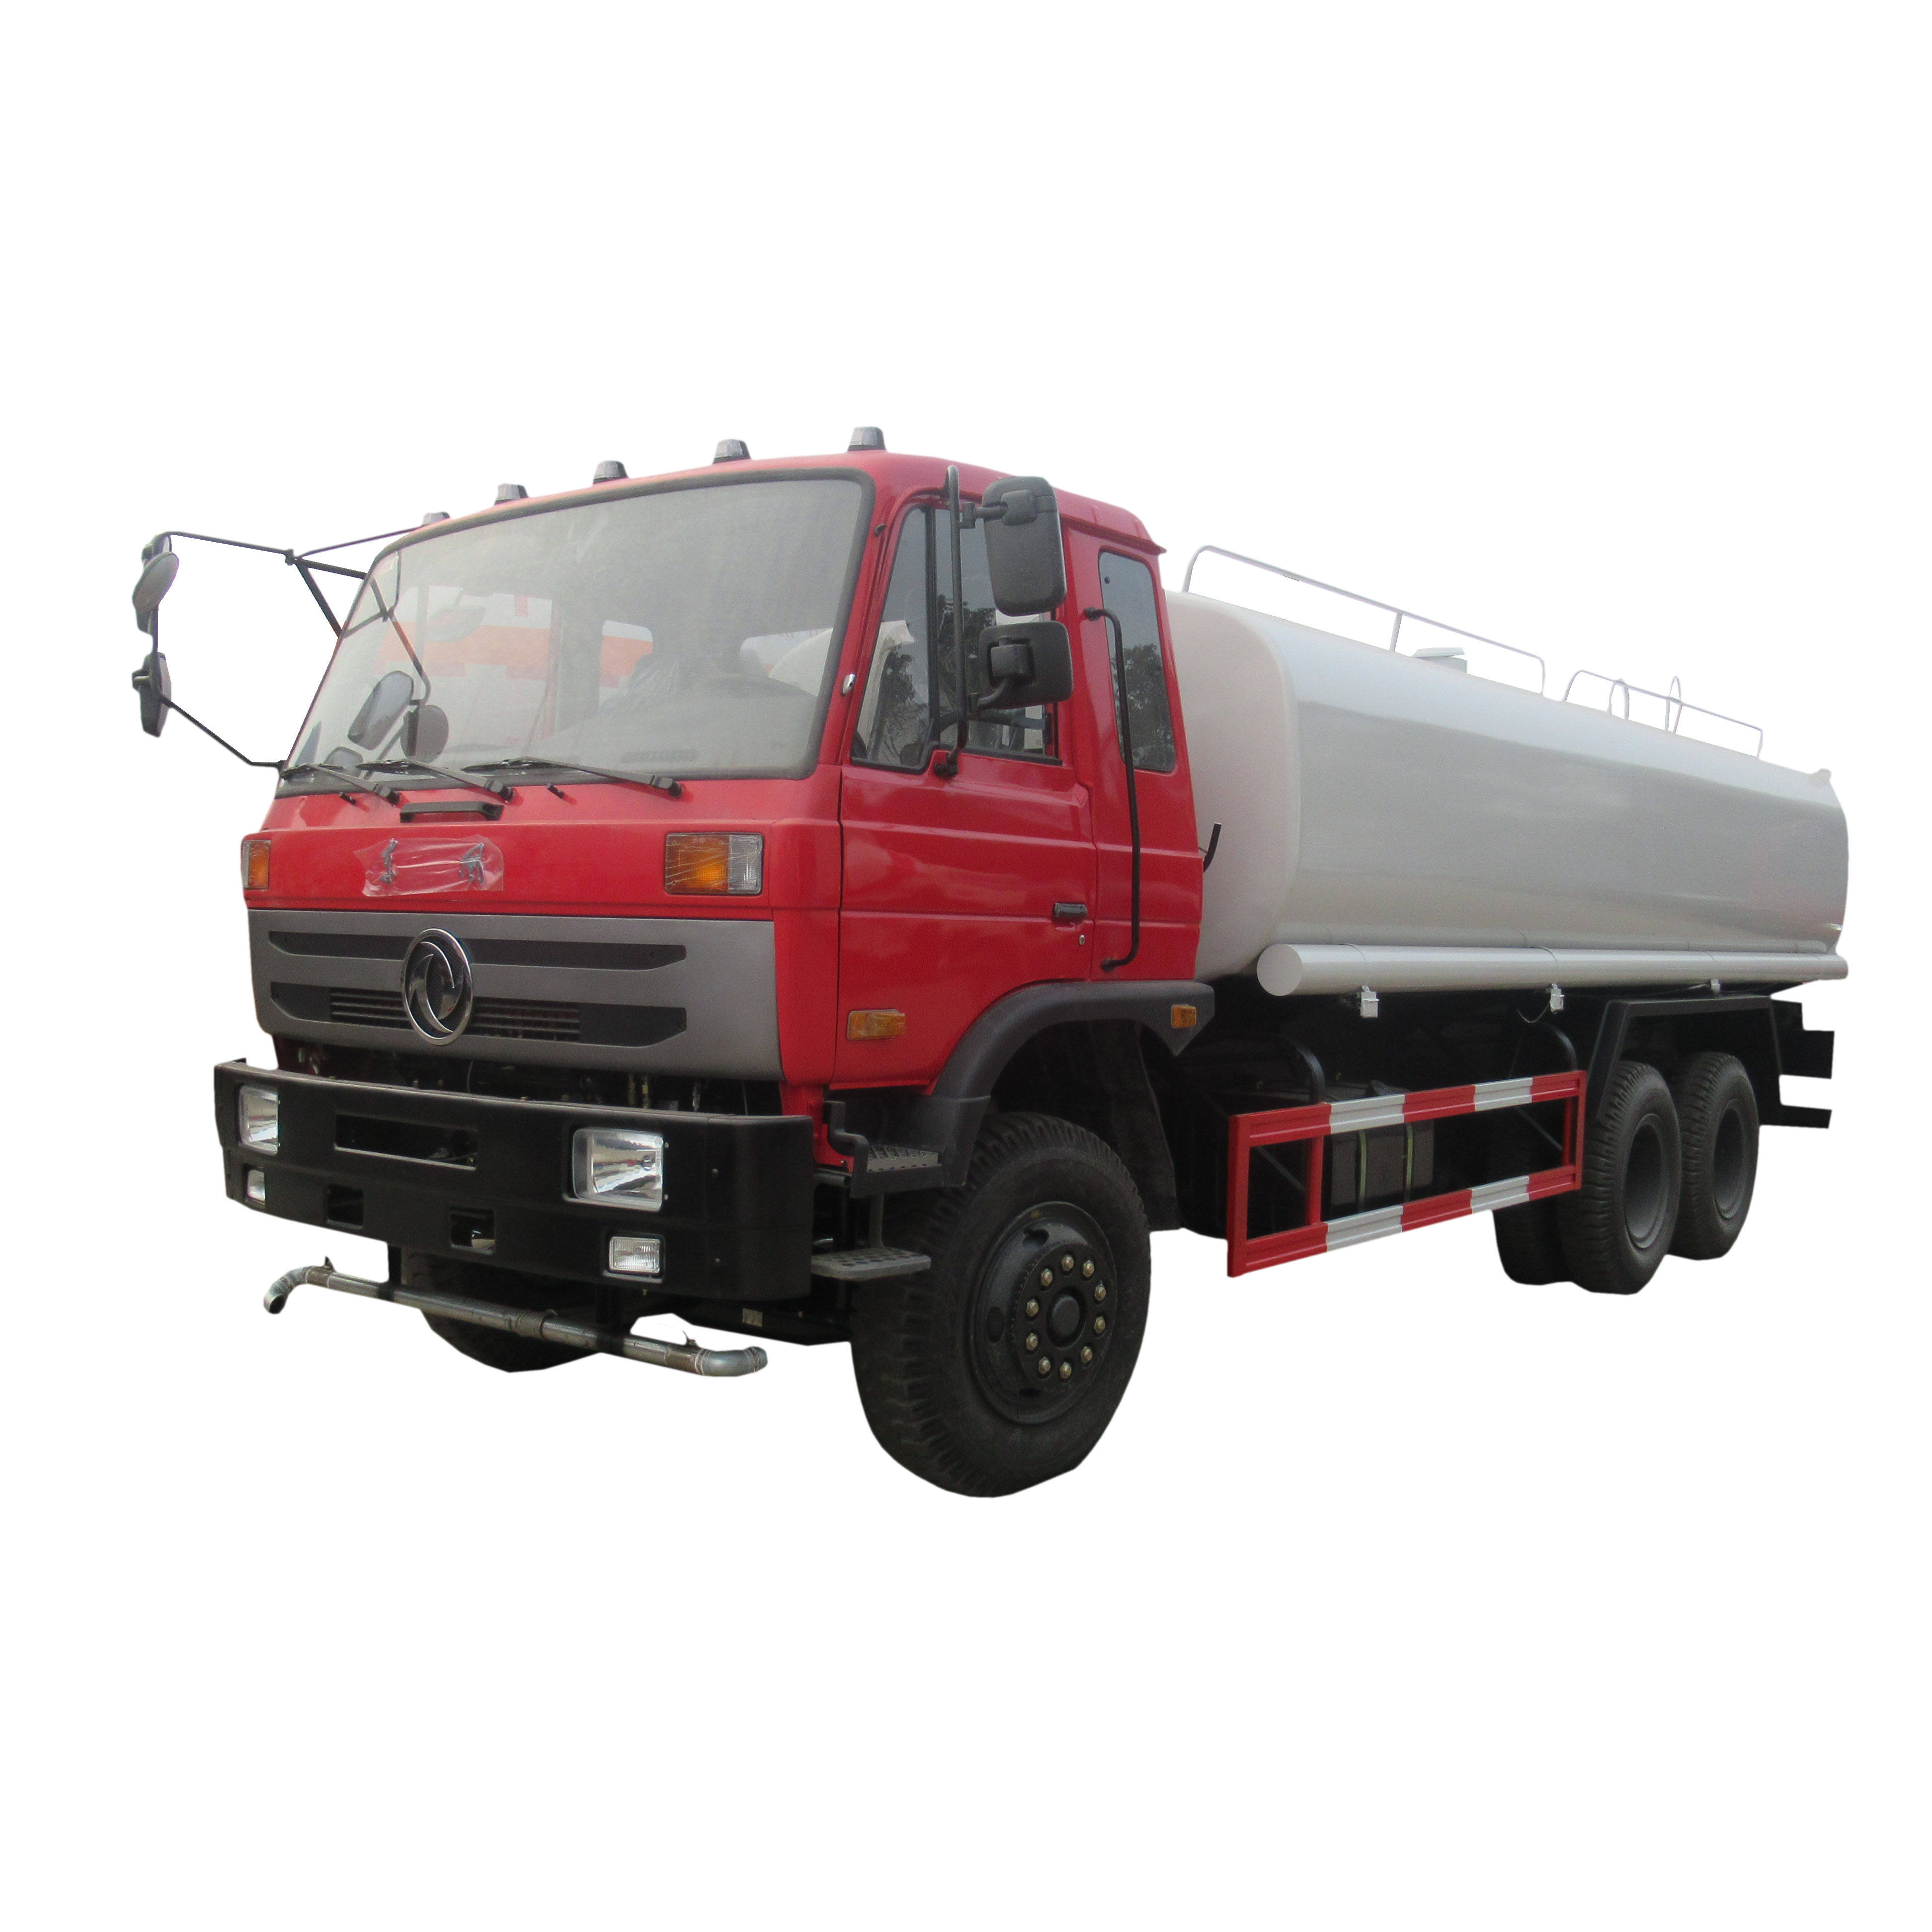 Dongfeng 10 wheeler 6x4 6x6 20m3 25000 litres 18000 litres water truck spray head6x6 off road water truck